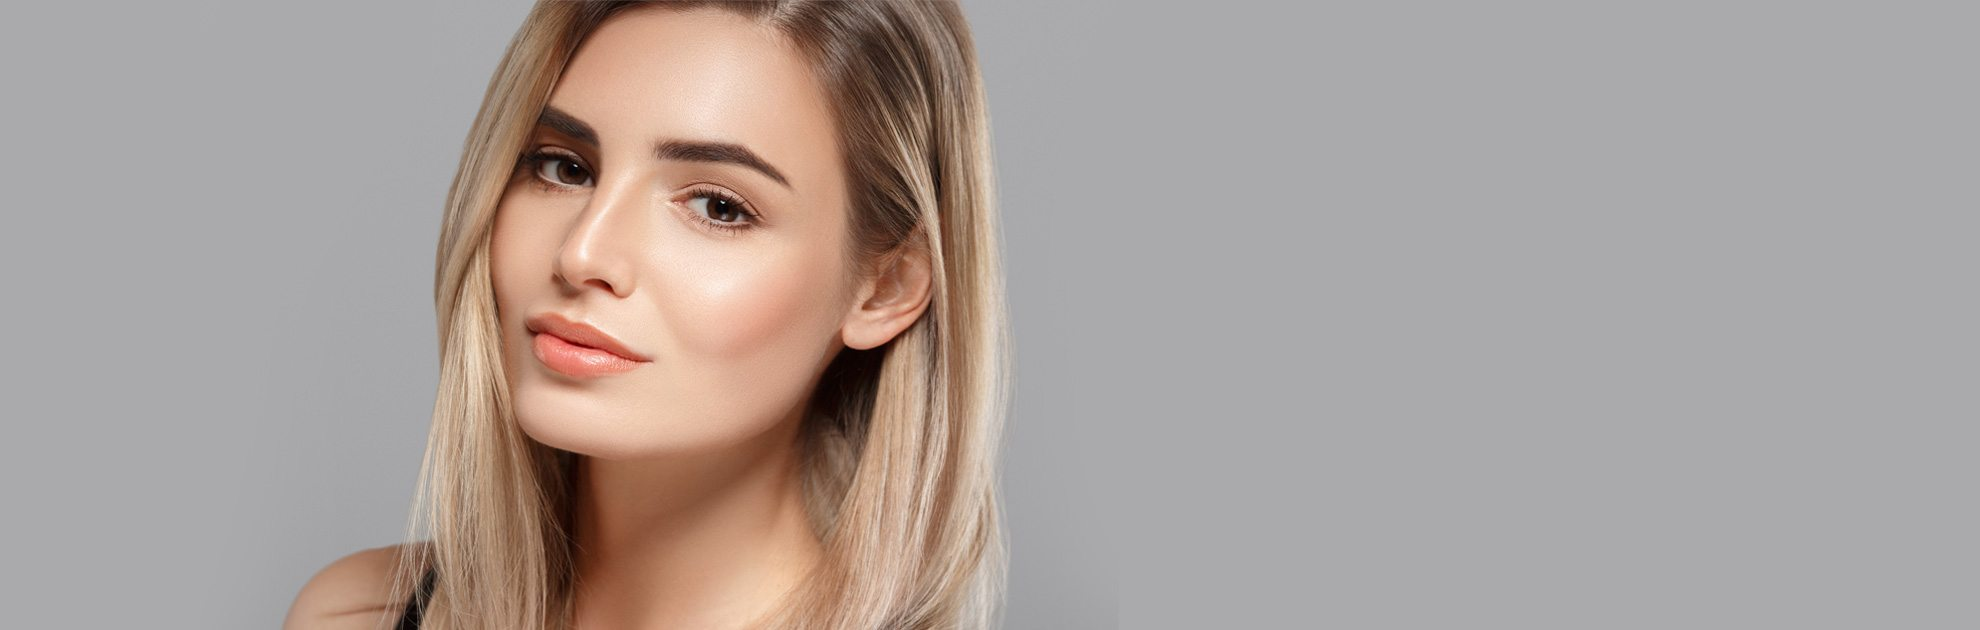 The Plastic Surgery Group, P.C. - Cosmetic & Plastic Surgery in New York